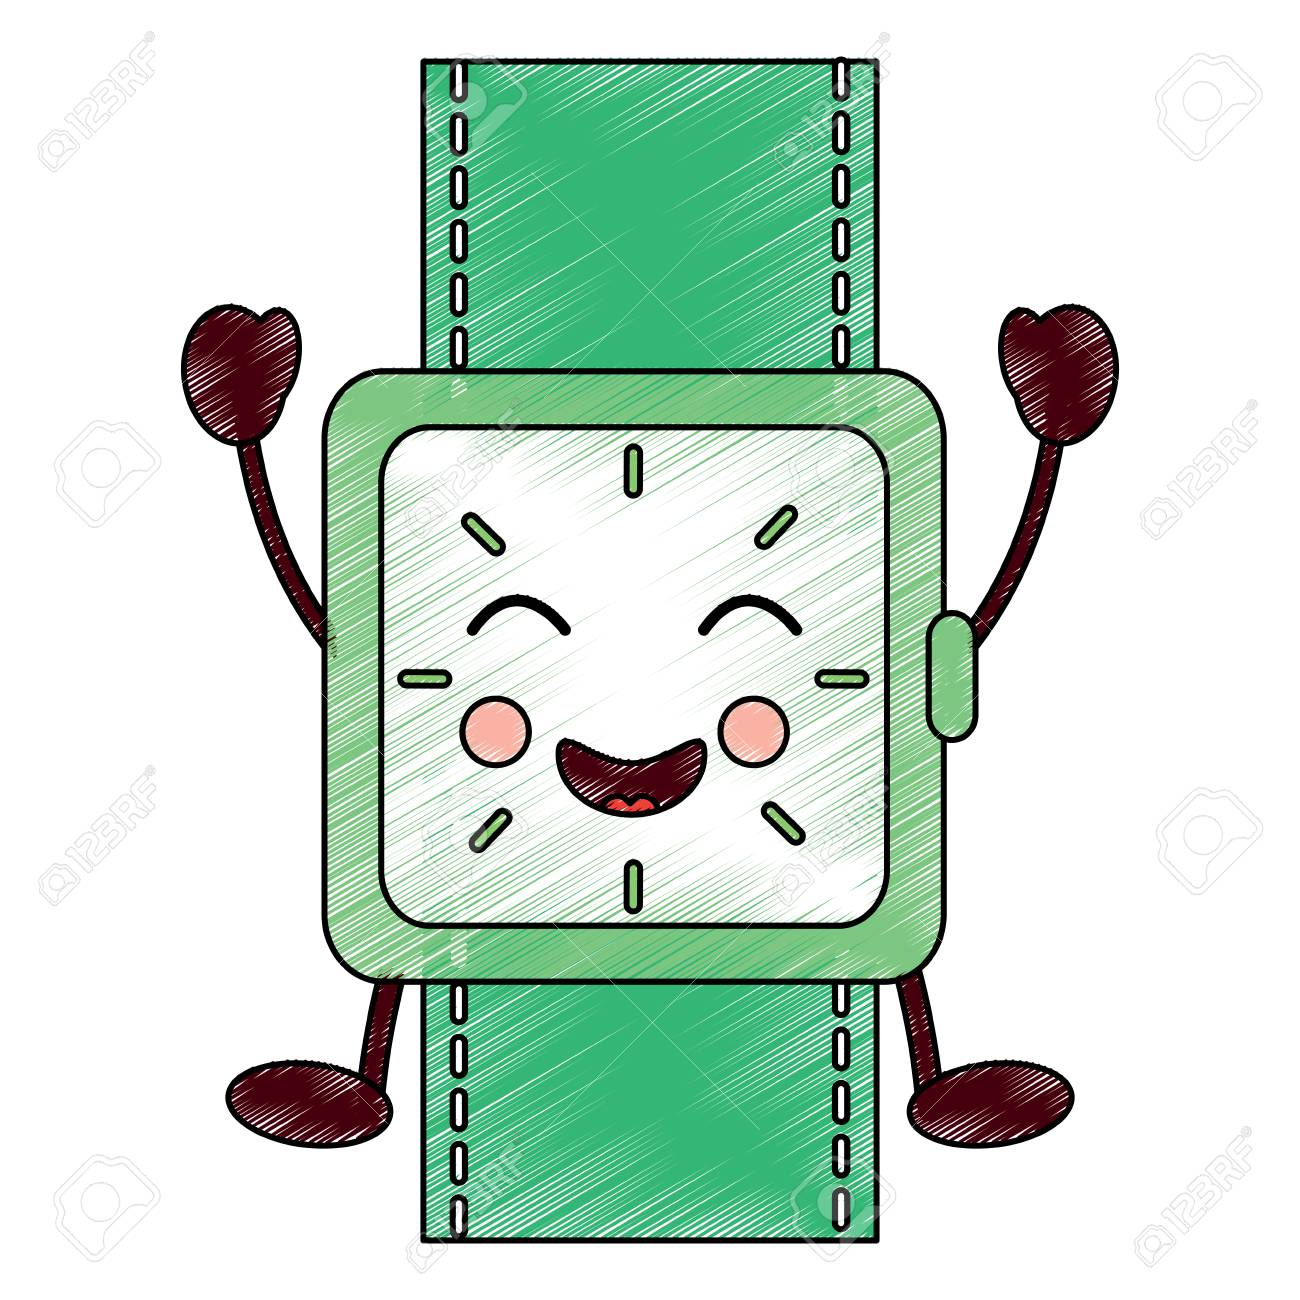 Wrist Watch Bracelet Square Cartoon Vector Illustration Drawing.. Royalty  Free Cliparts, Vectors, And Stock Illustration. Image 94216747.